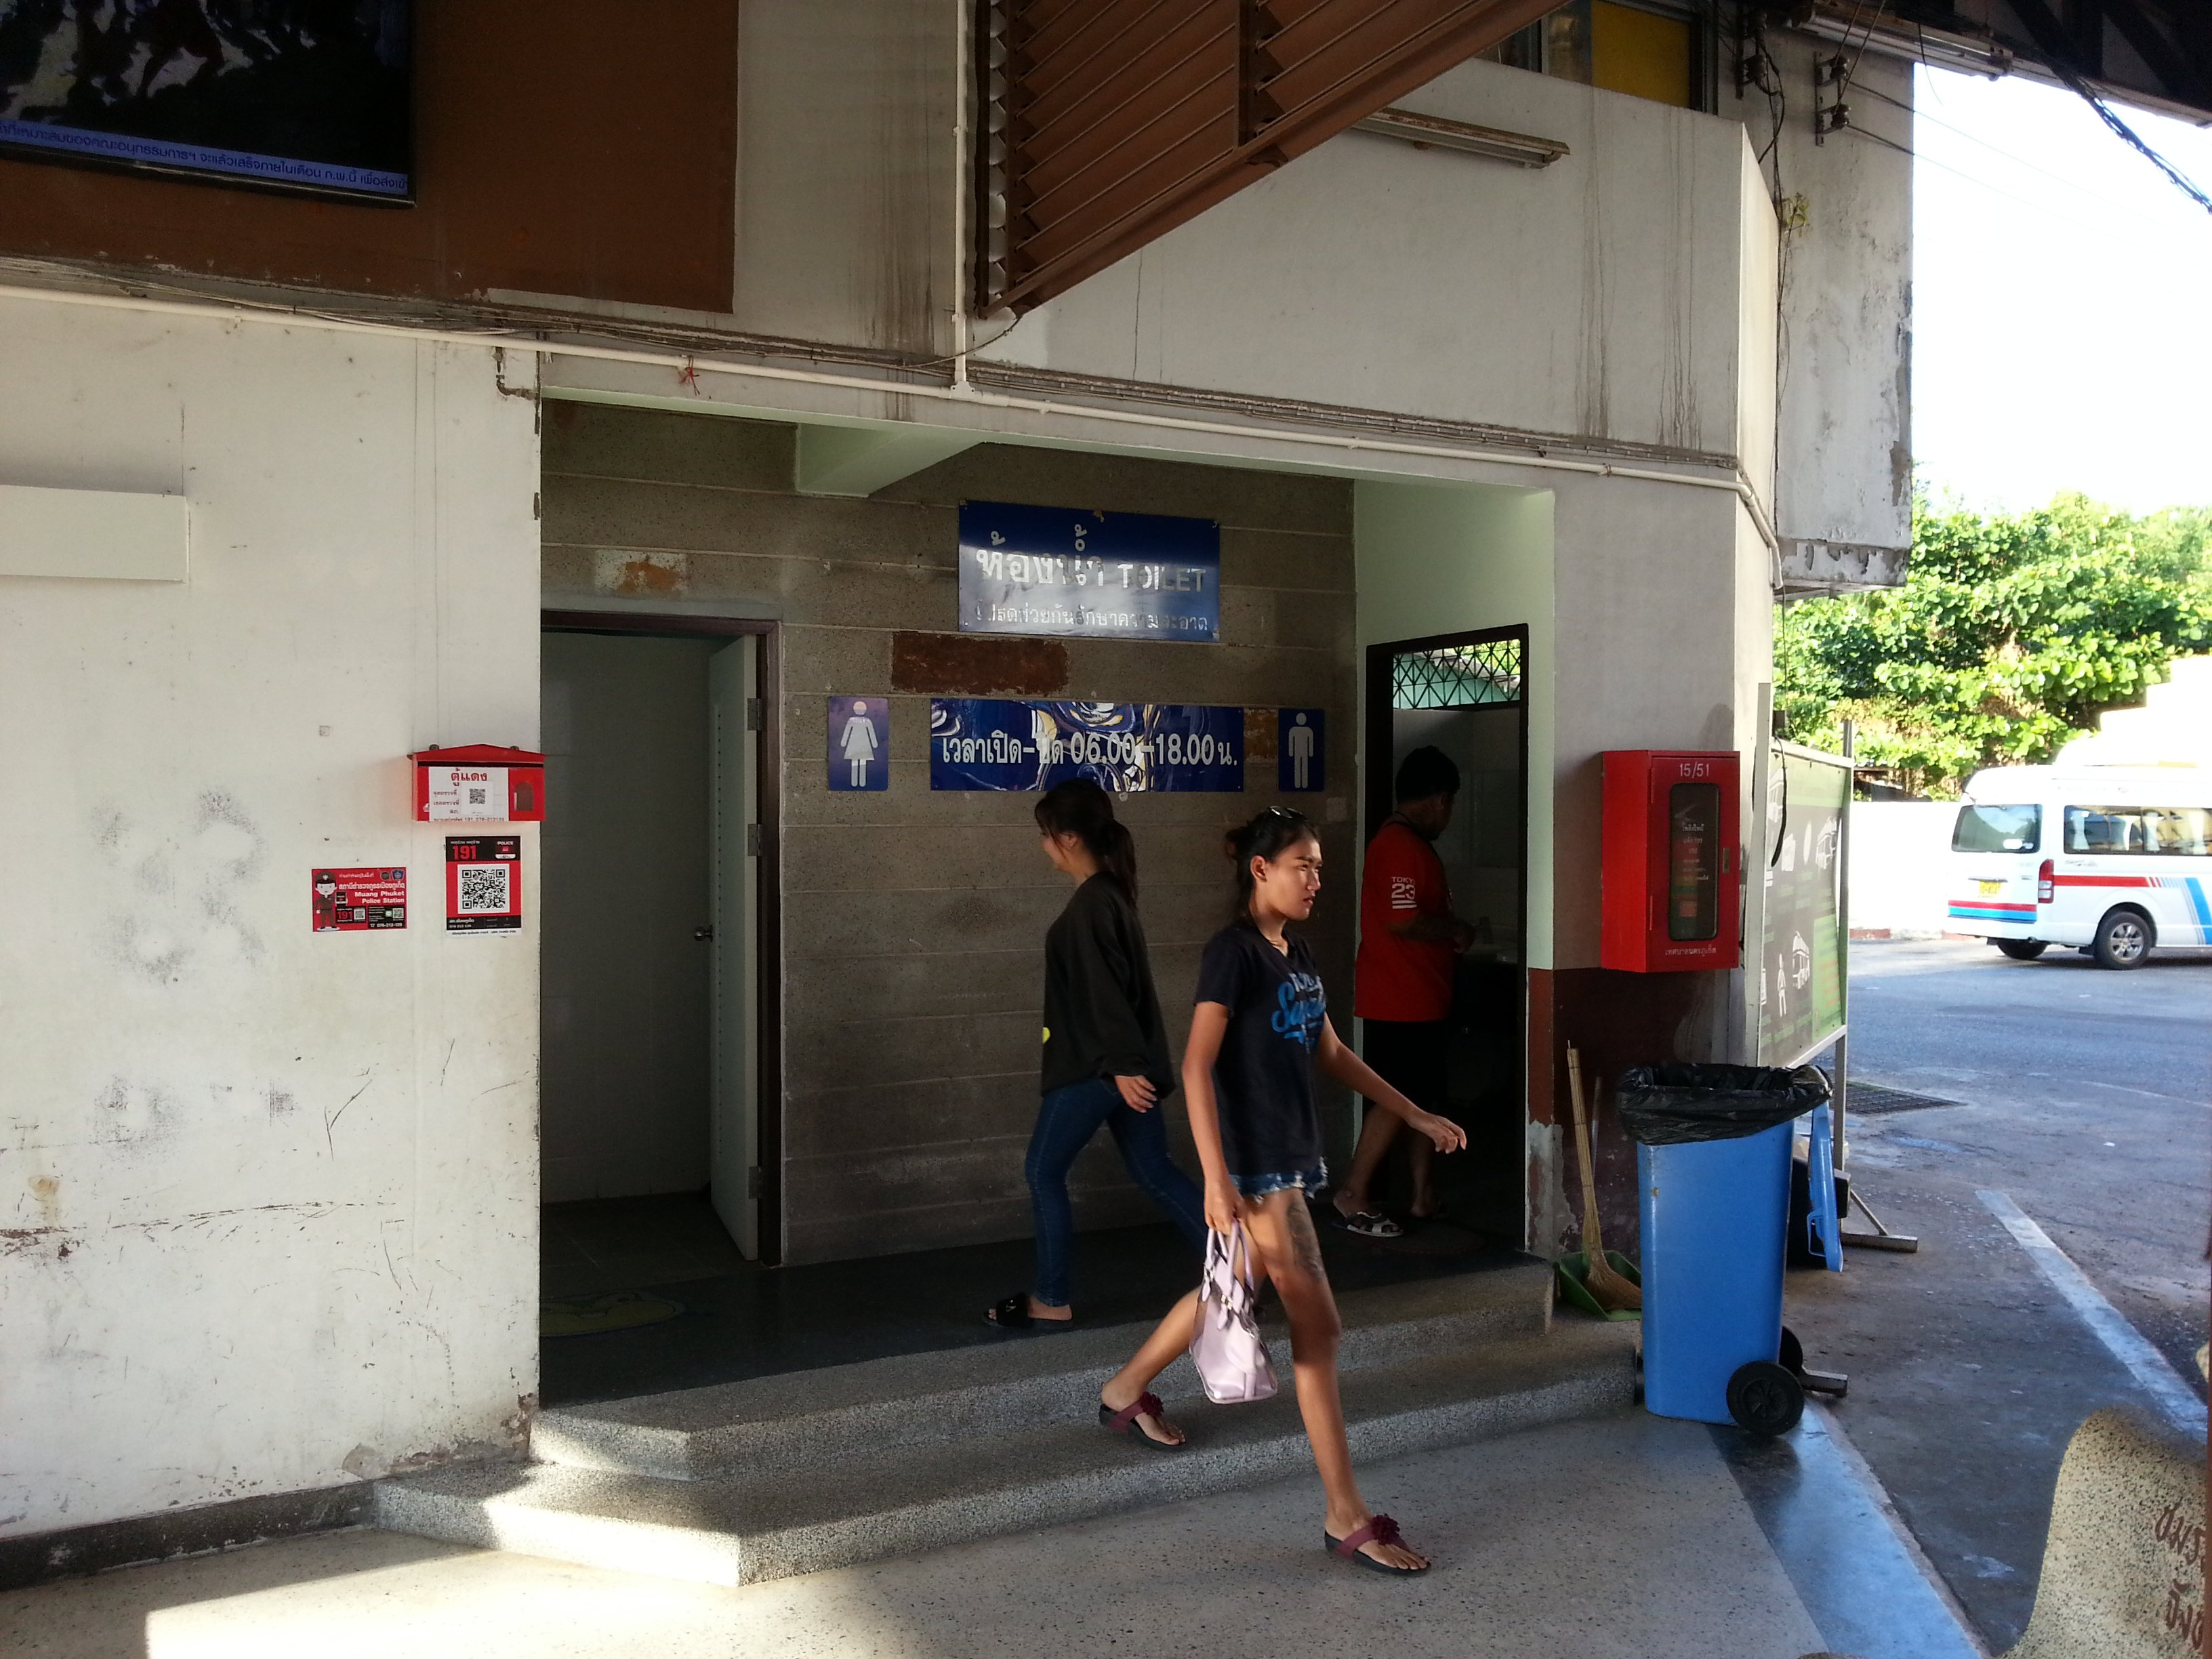 Toilets are located at the far end of Phuket Bus Terminal 1